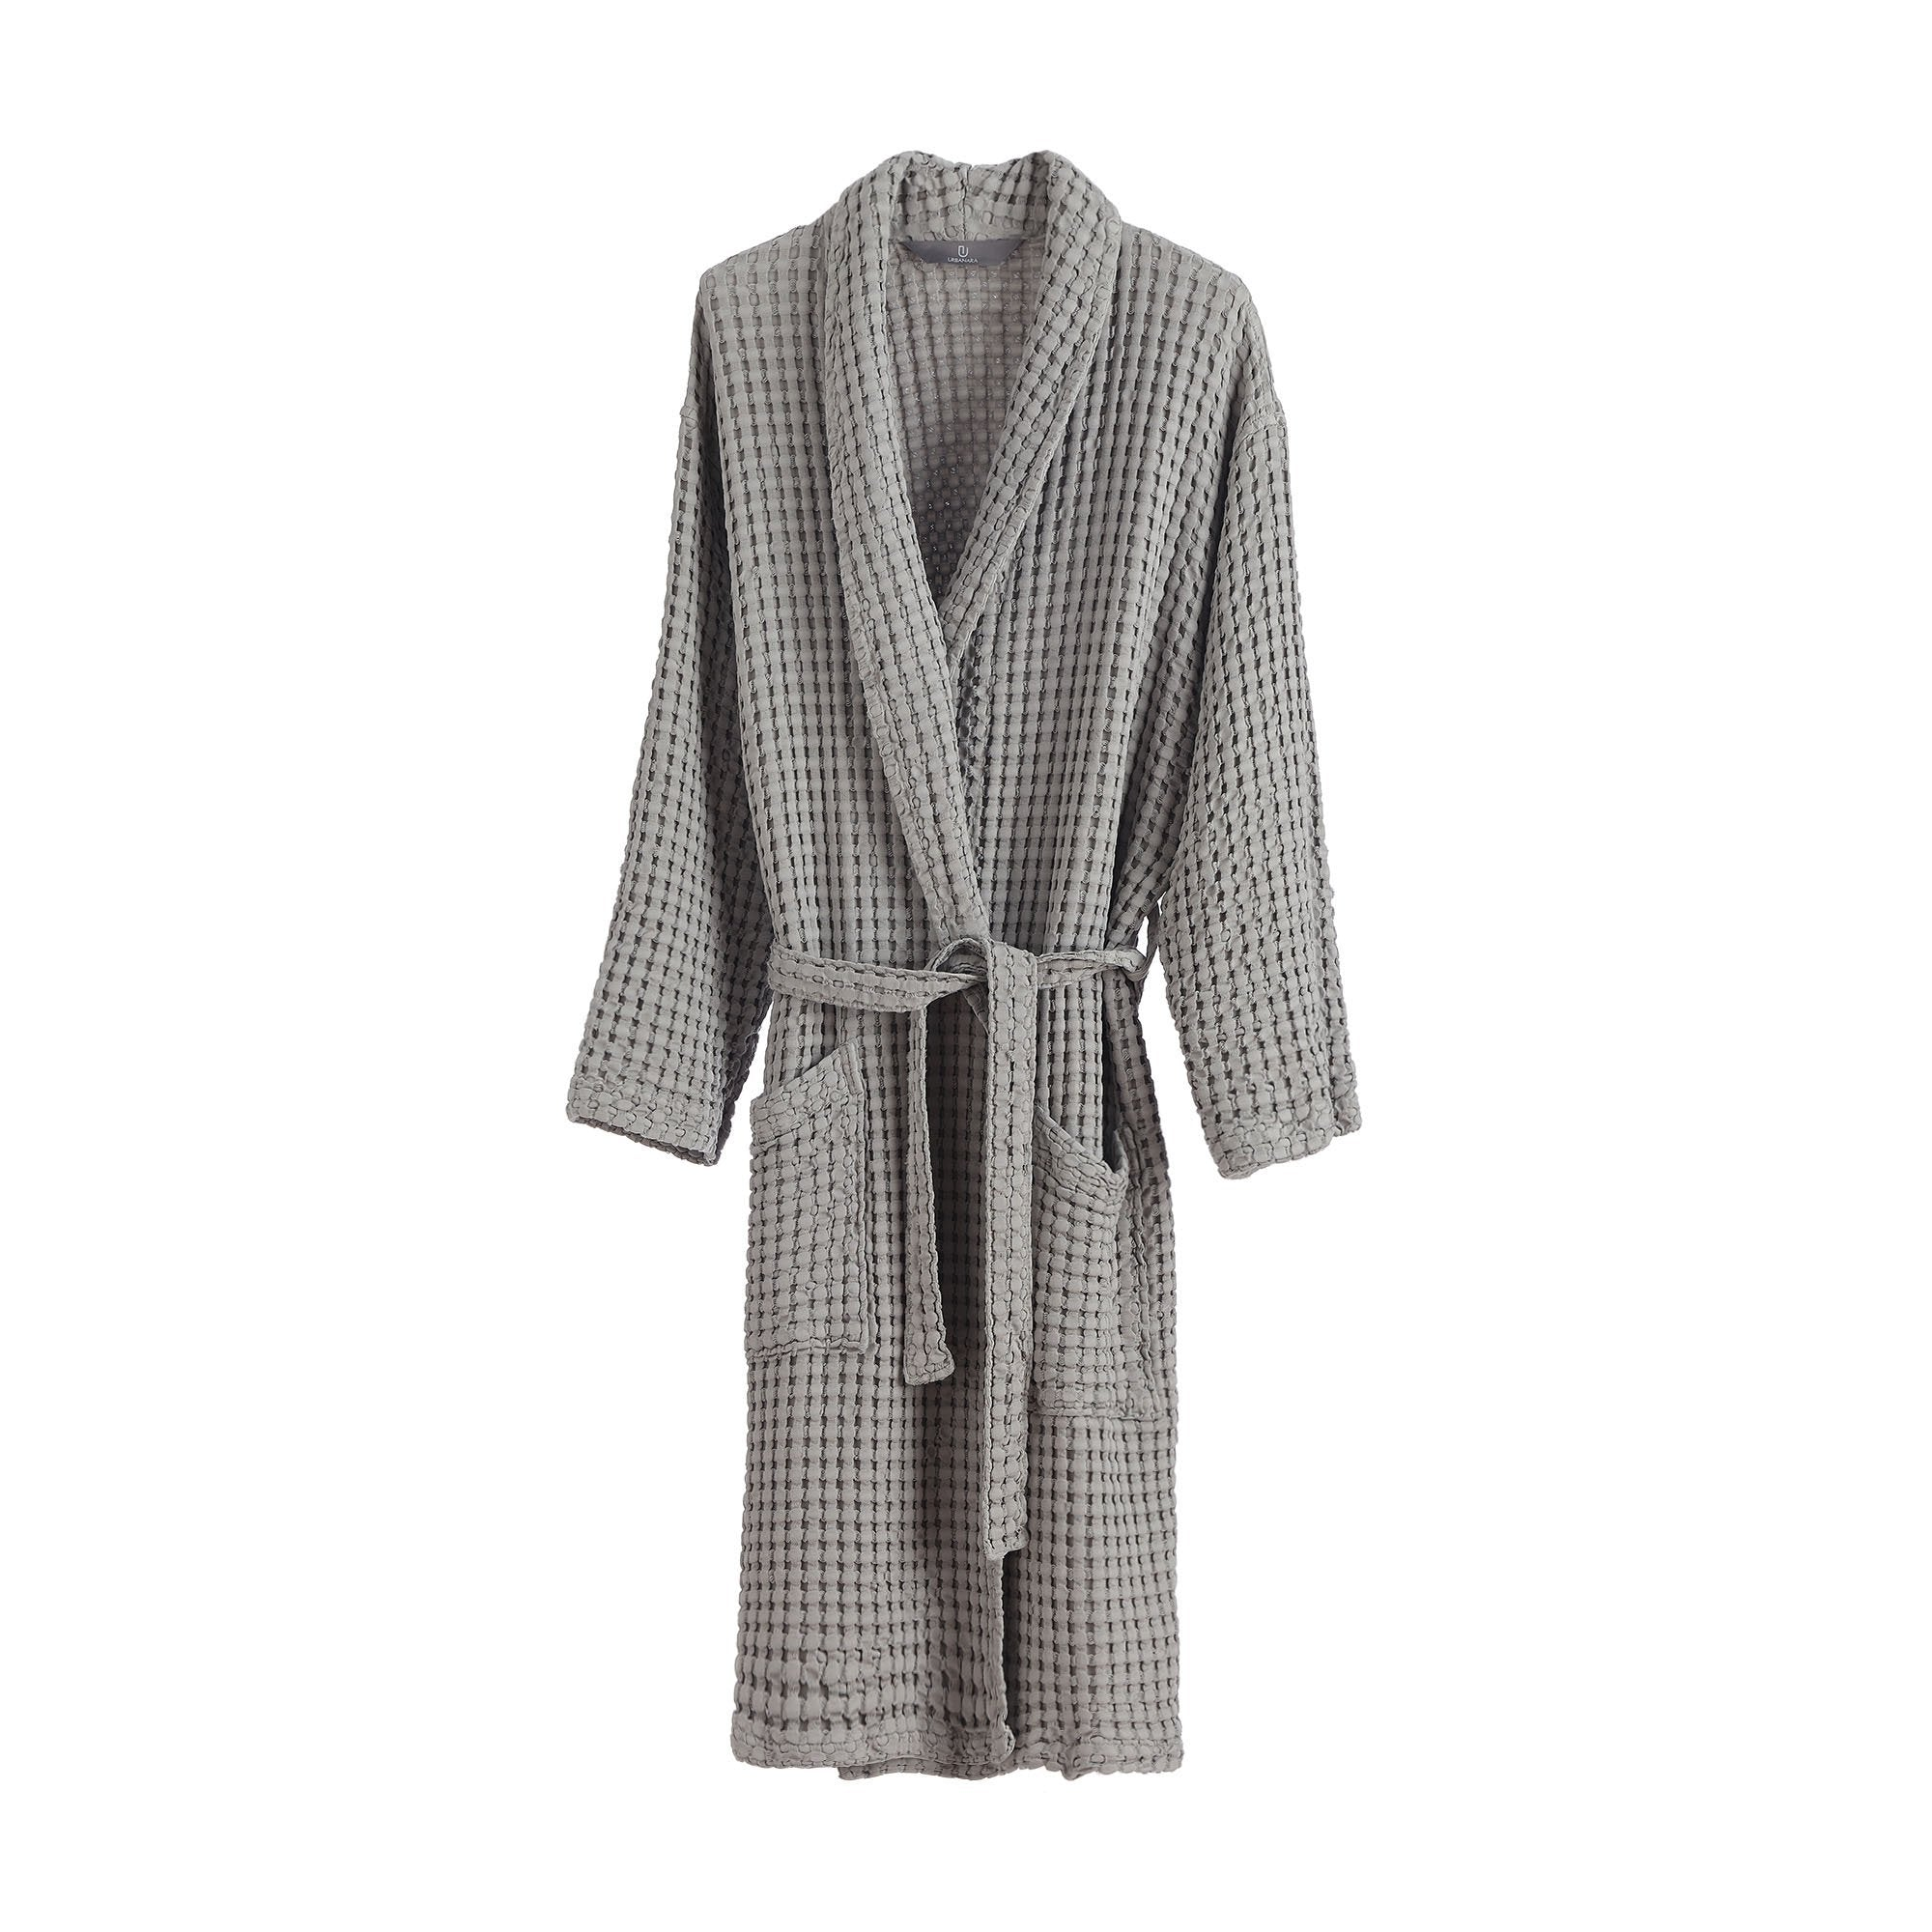 Veiros bathrobe, light grey, 100% cotton